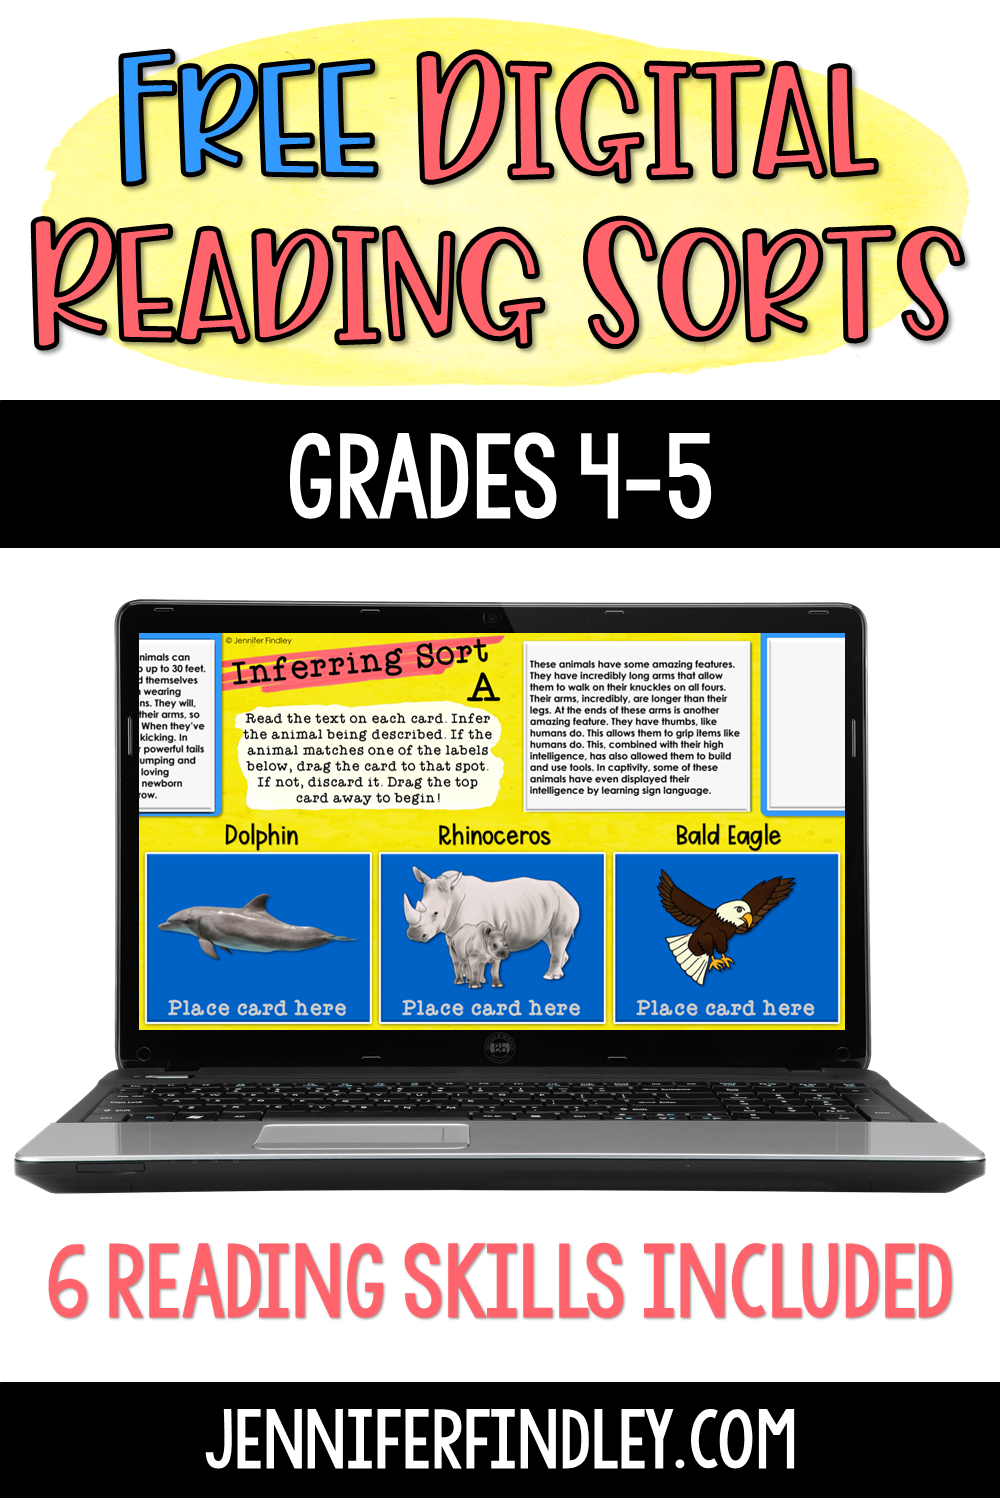 Download these free digital reading sorts for grades 4-5!